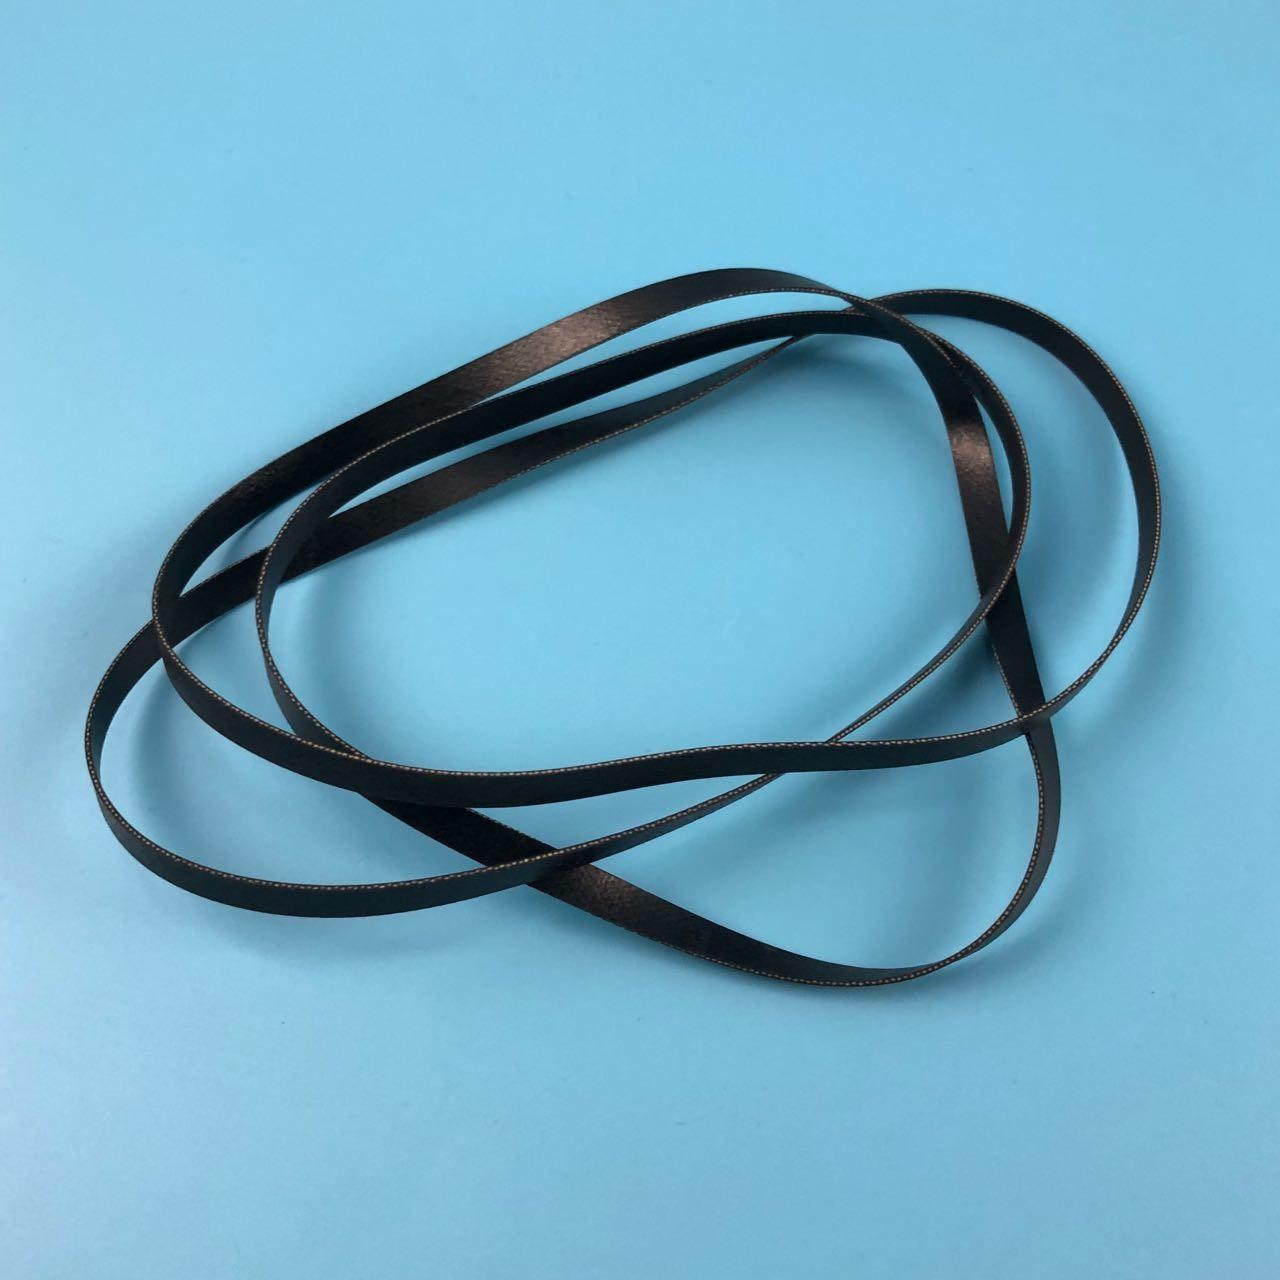 Buy cheap ATM Parts Diebold ATM Machine Diebold flat belt High quality 29-008482-000G 29008482000G from Wholesalers